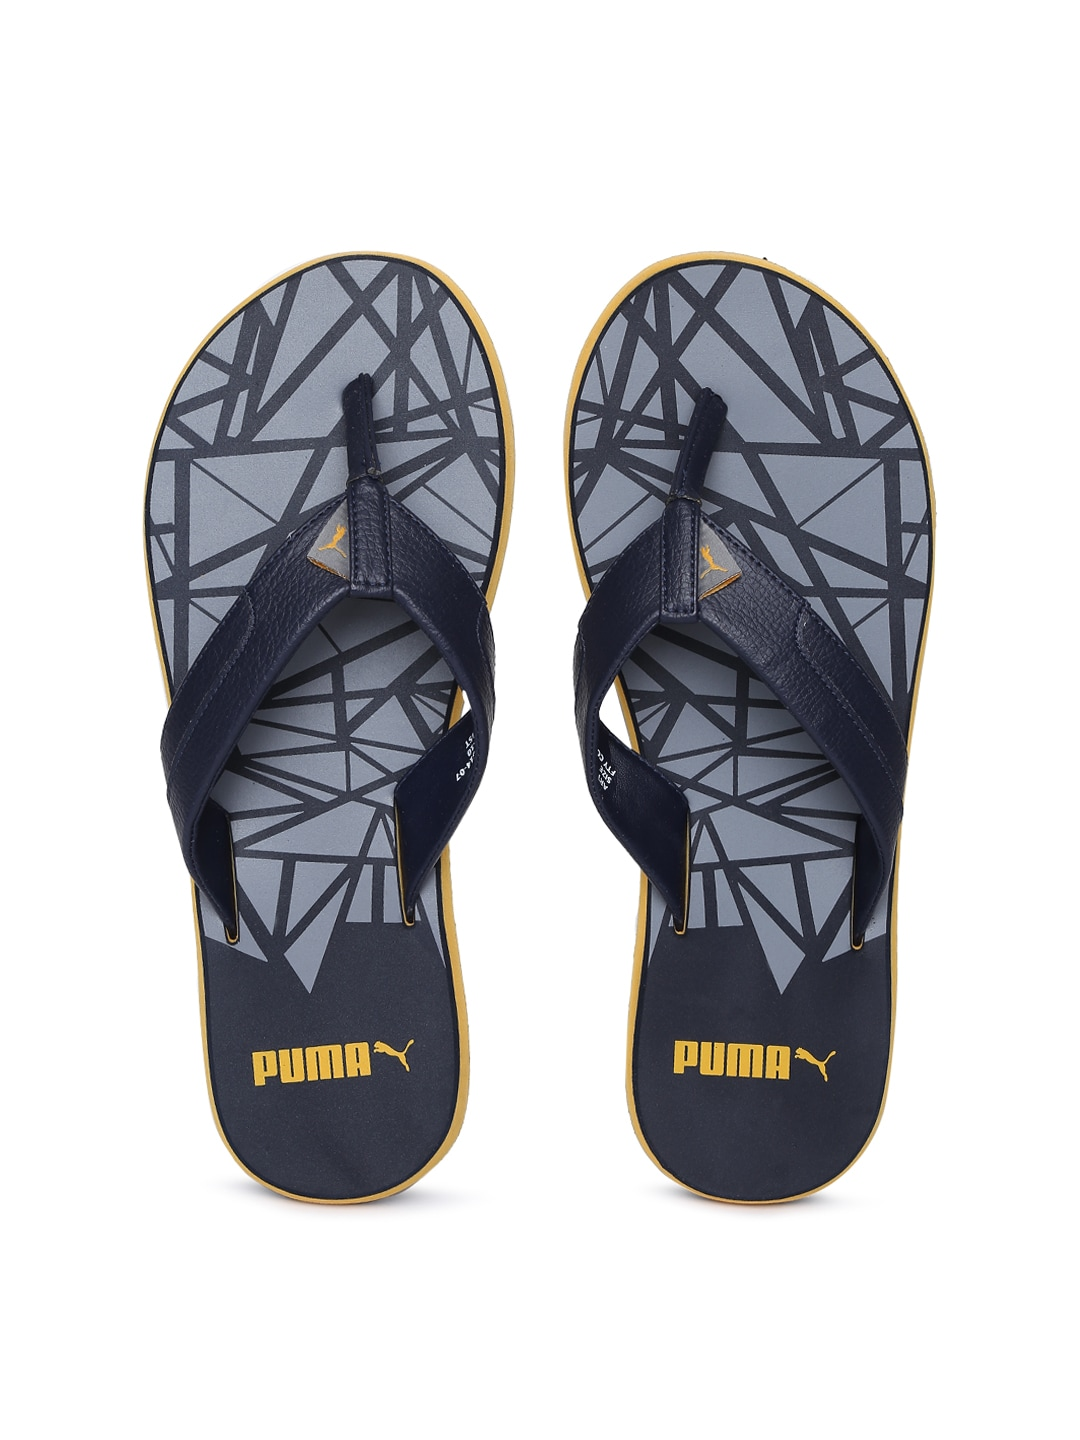 251173d353e Puma Slippers - Buy Puma Slippers Online at Best Price